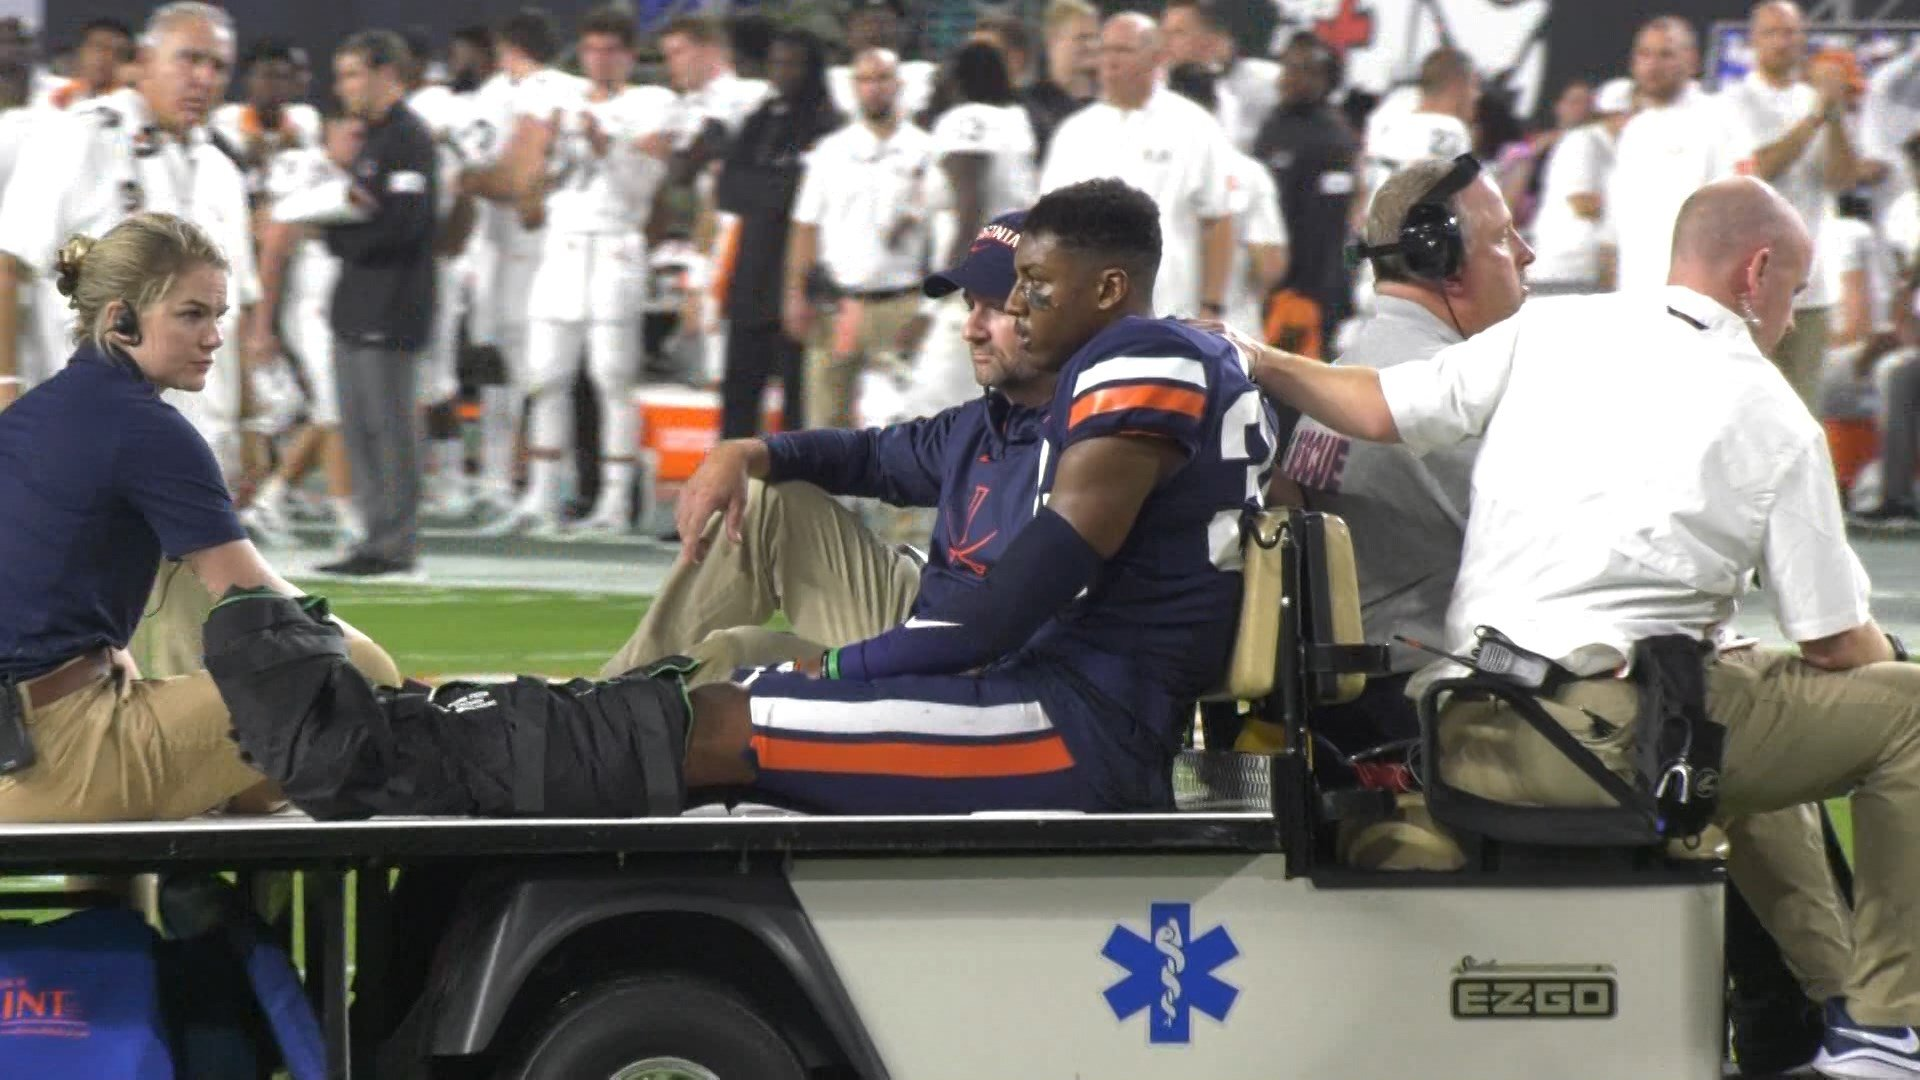 UVa's Bryce Hall Out for The Season Following Ankle Surgery